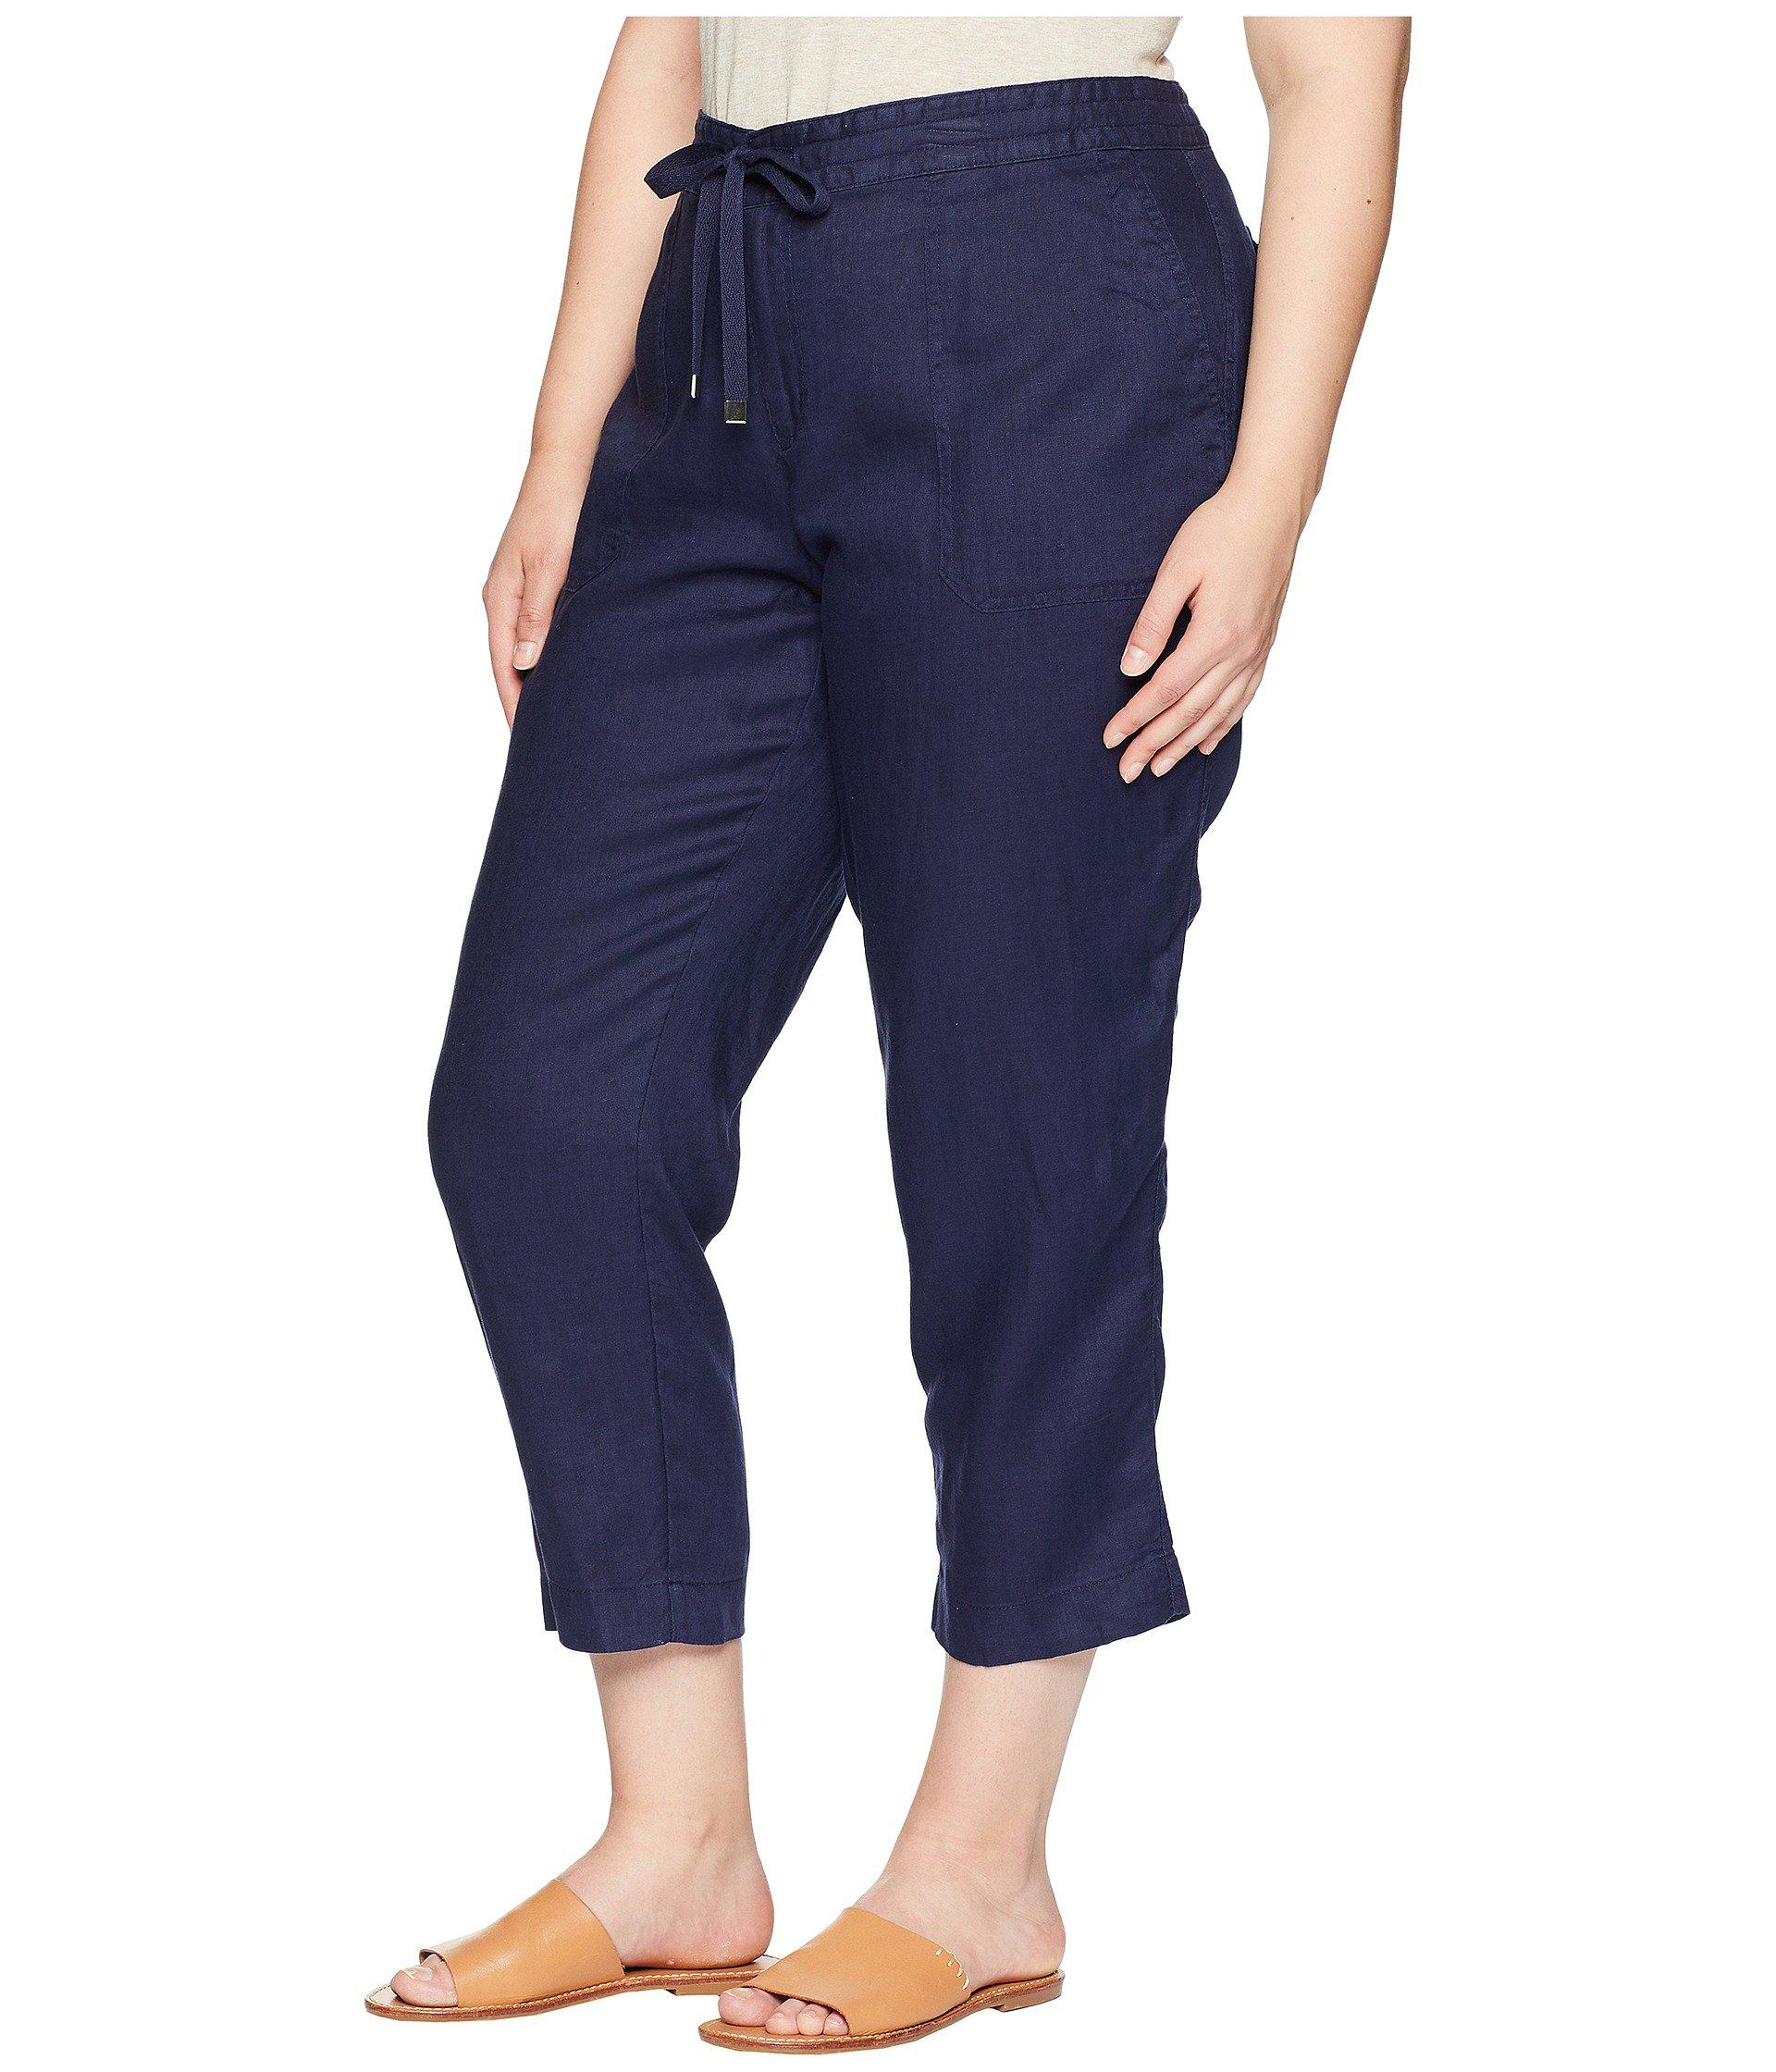 505c2e0a4 Lyst - Lauren by Ralph Lauren Plus Size Straight Linen Pants in Blue - Save  43%